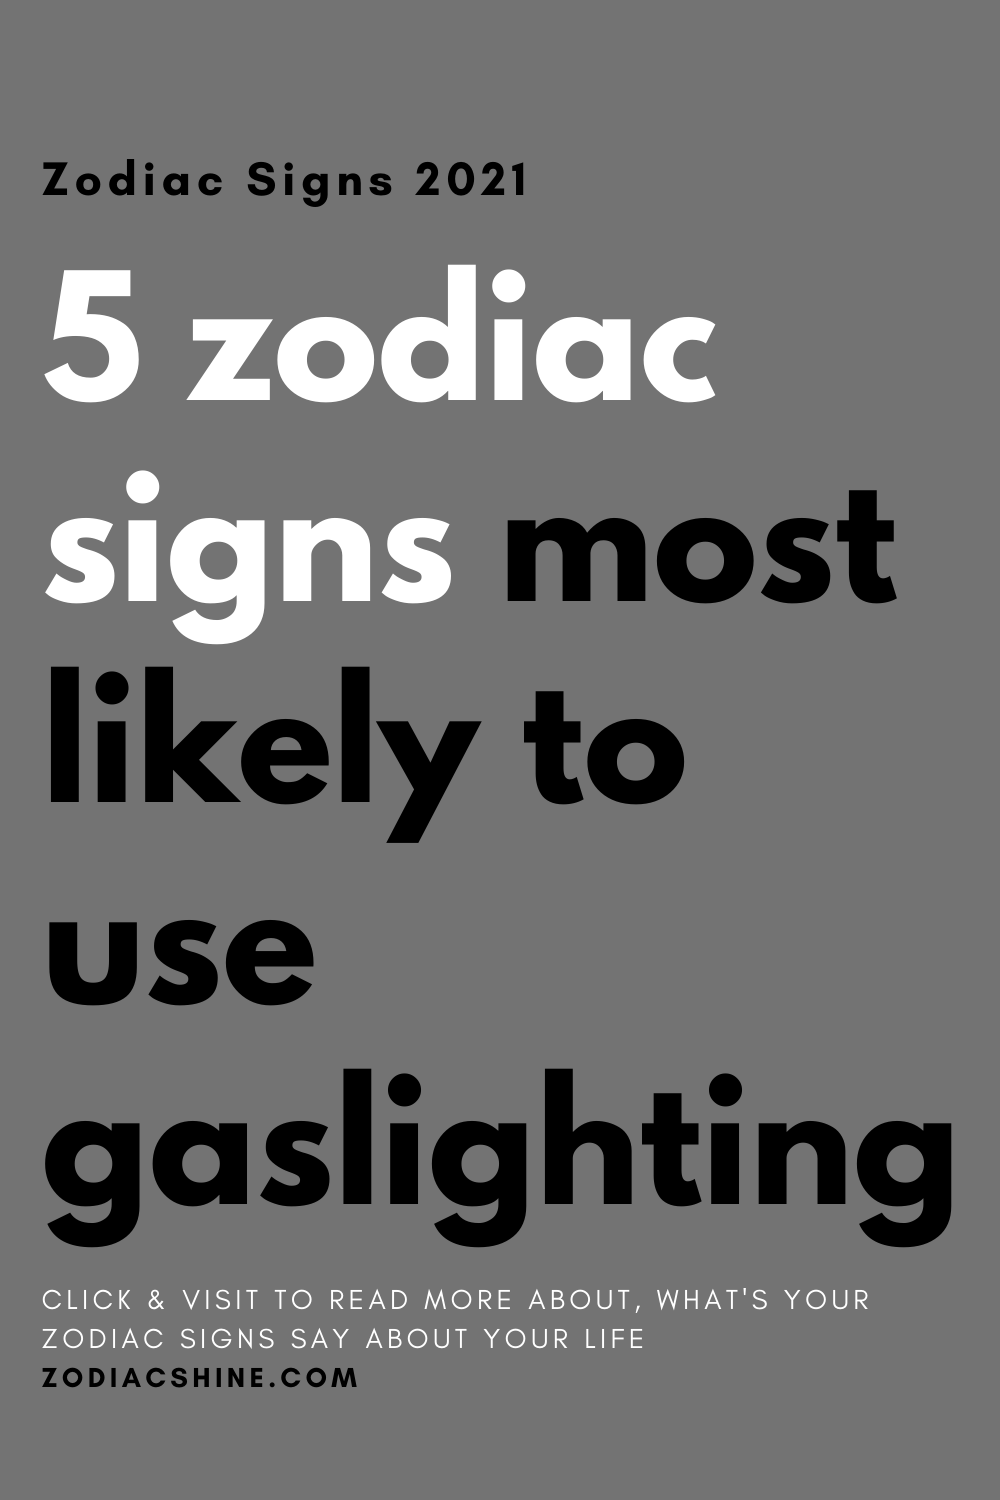 5 zodiac signs most likely to use gaslighting